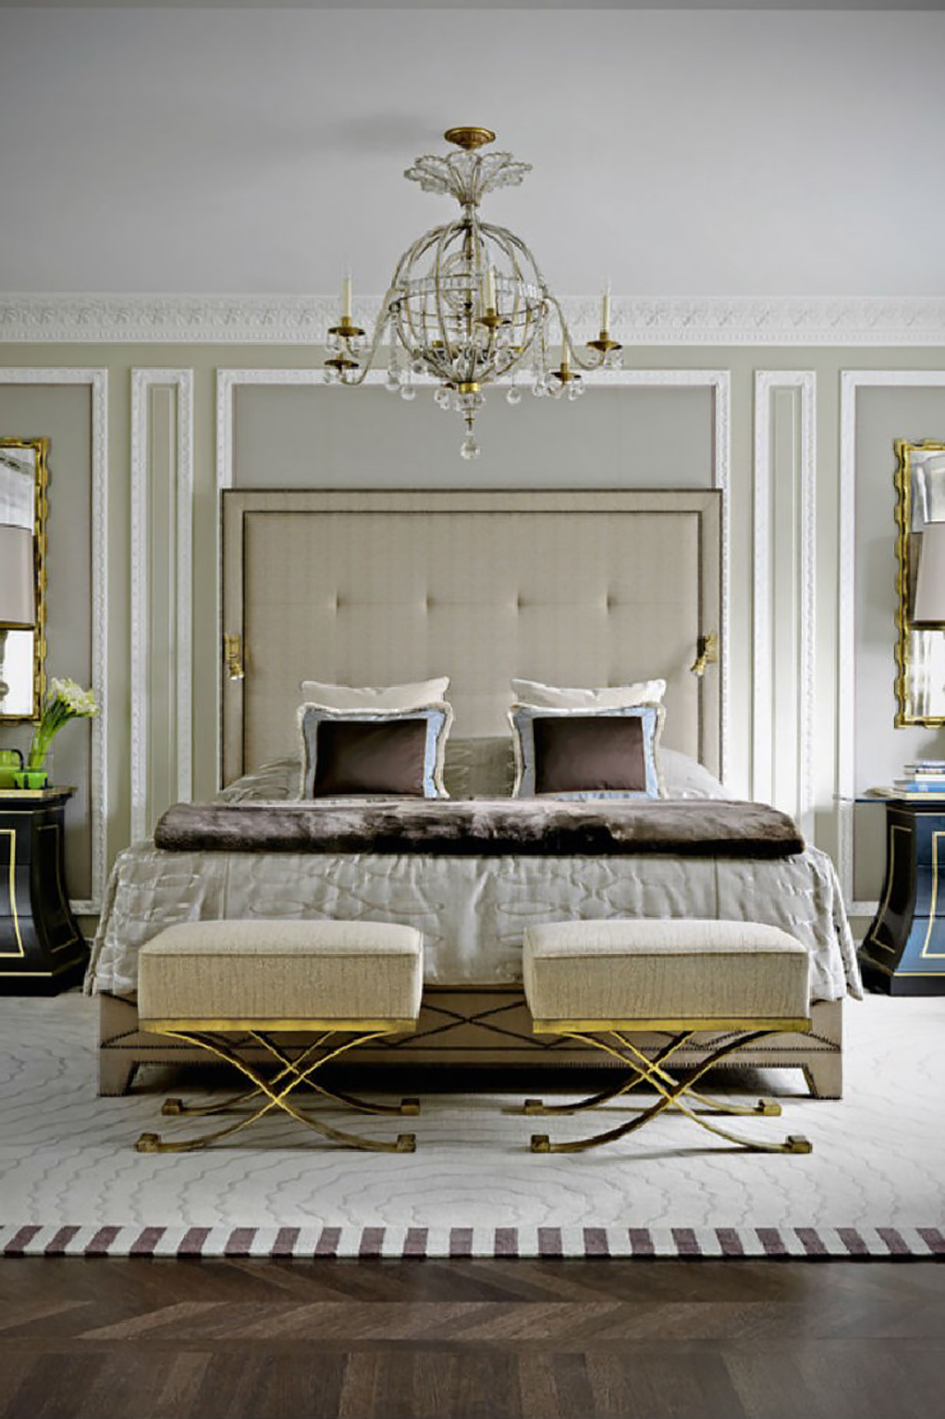 100 Must-See Bedroom Ideas for Inspiration bedroom ideas 100 Must-See Bedroom Ideas for Inspiration 18 Jean Louis Deniot ultra luxurious bedroom apartment